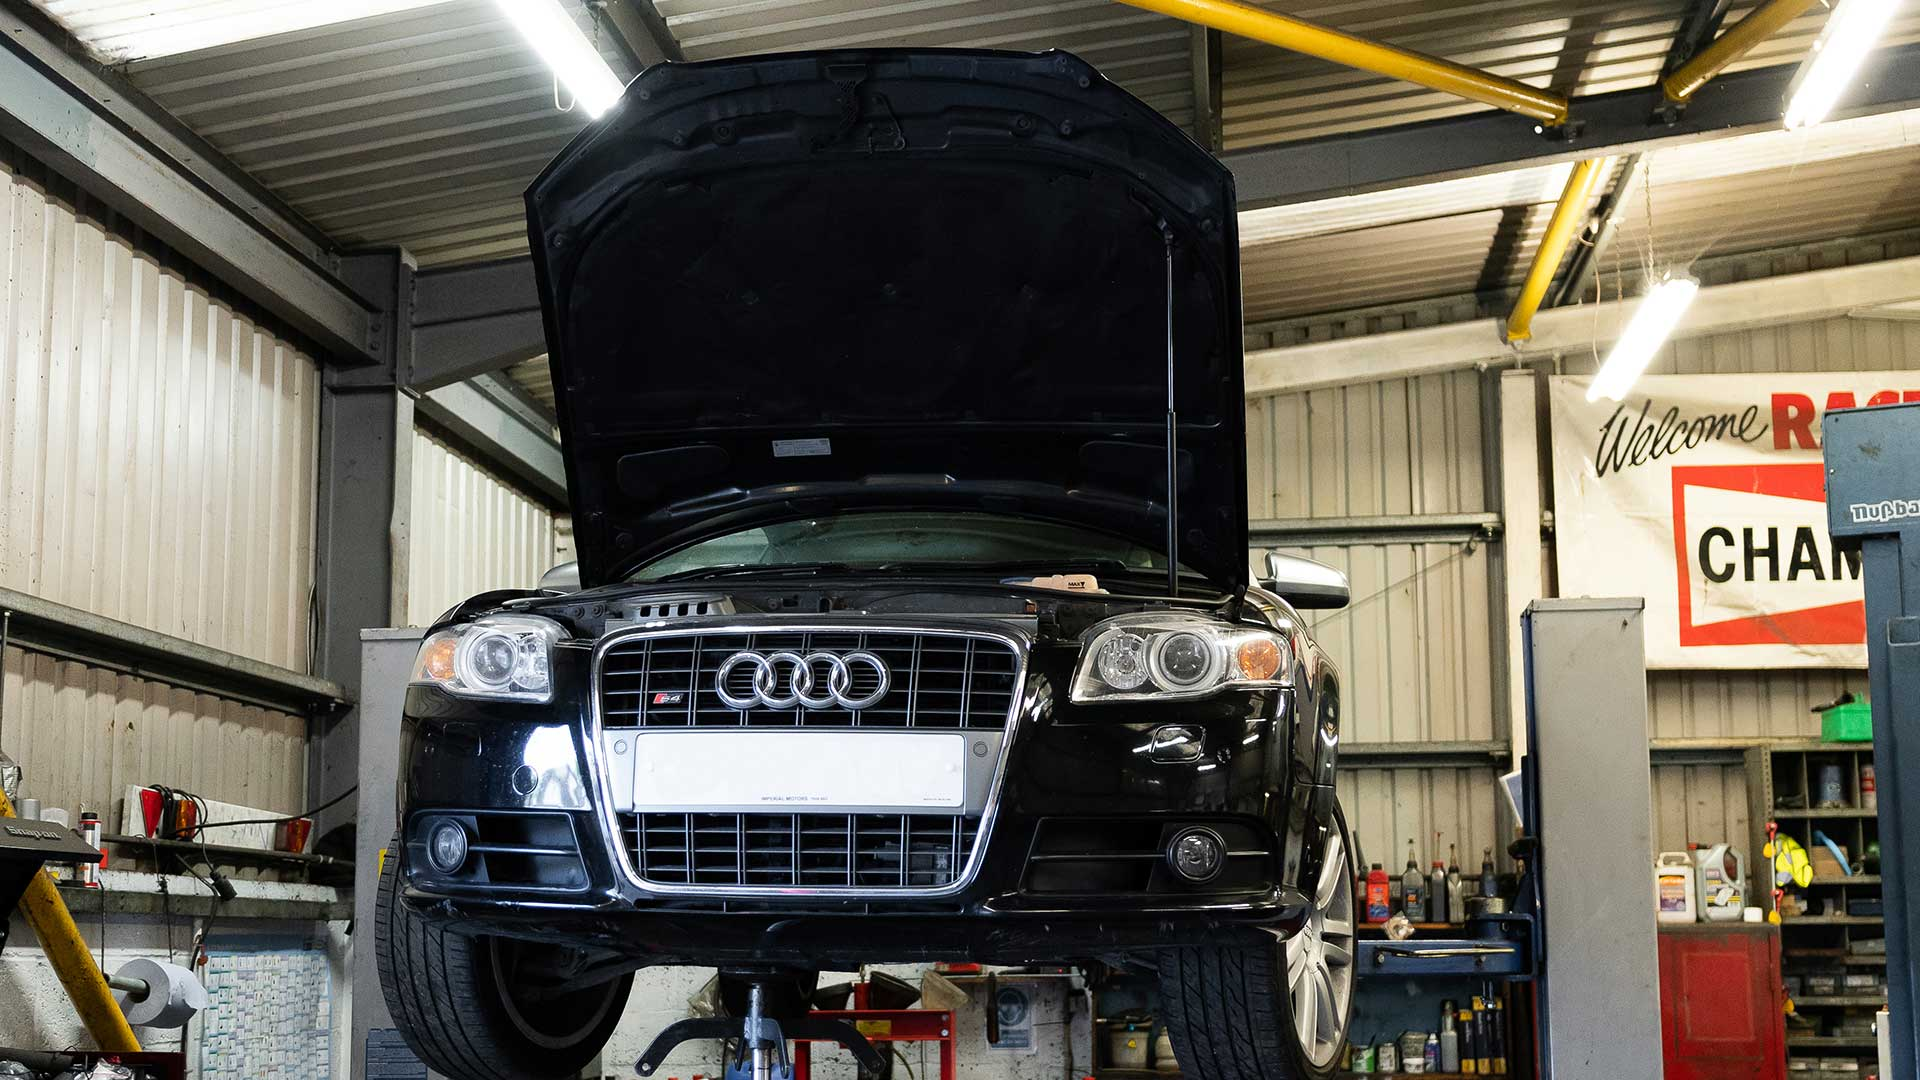 Photo of an audi car on the ramp